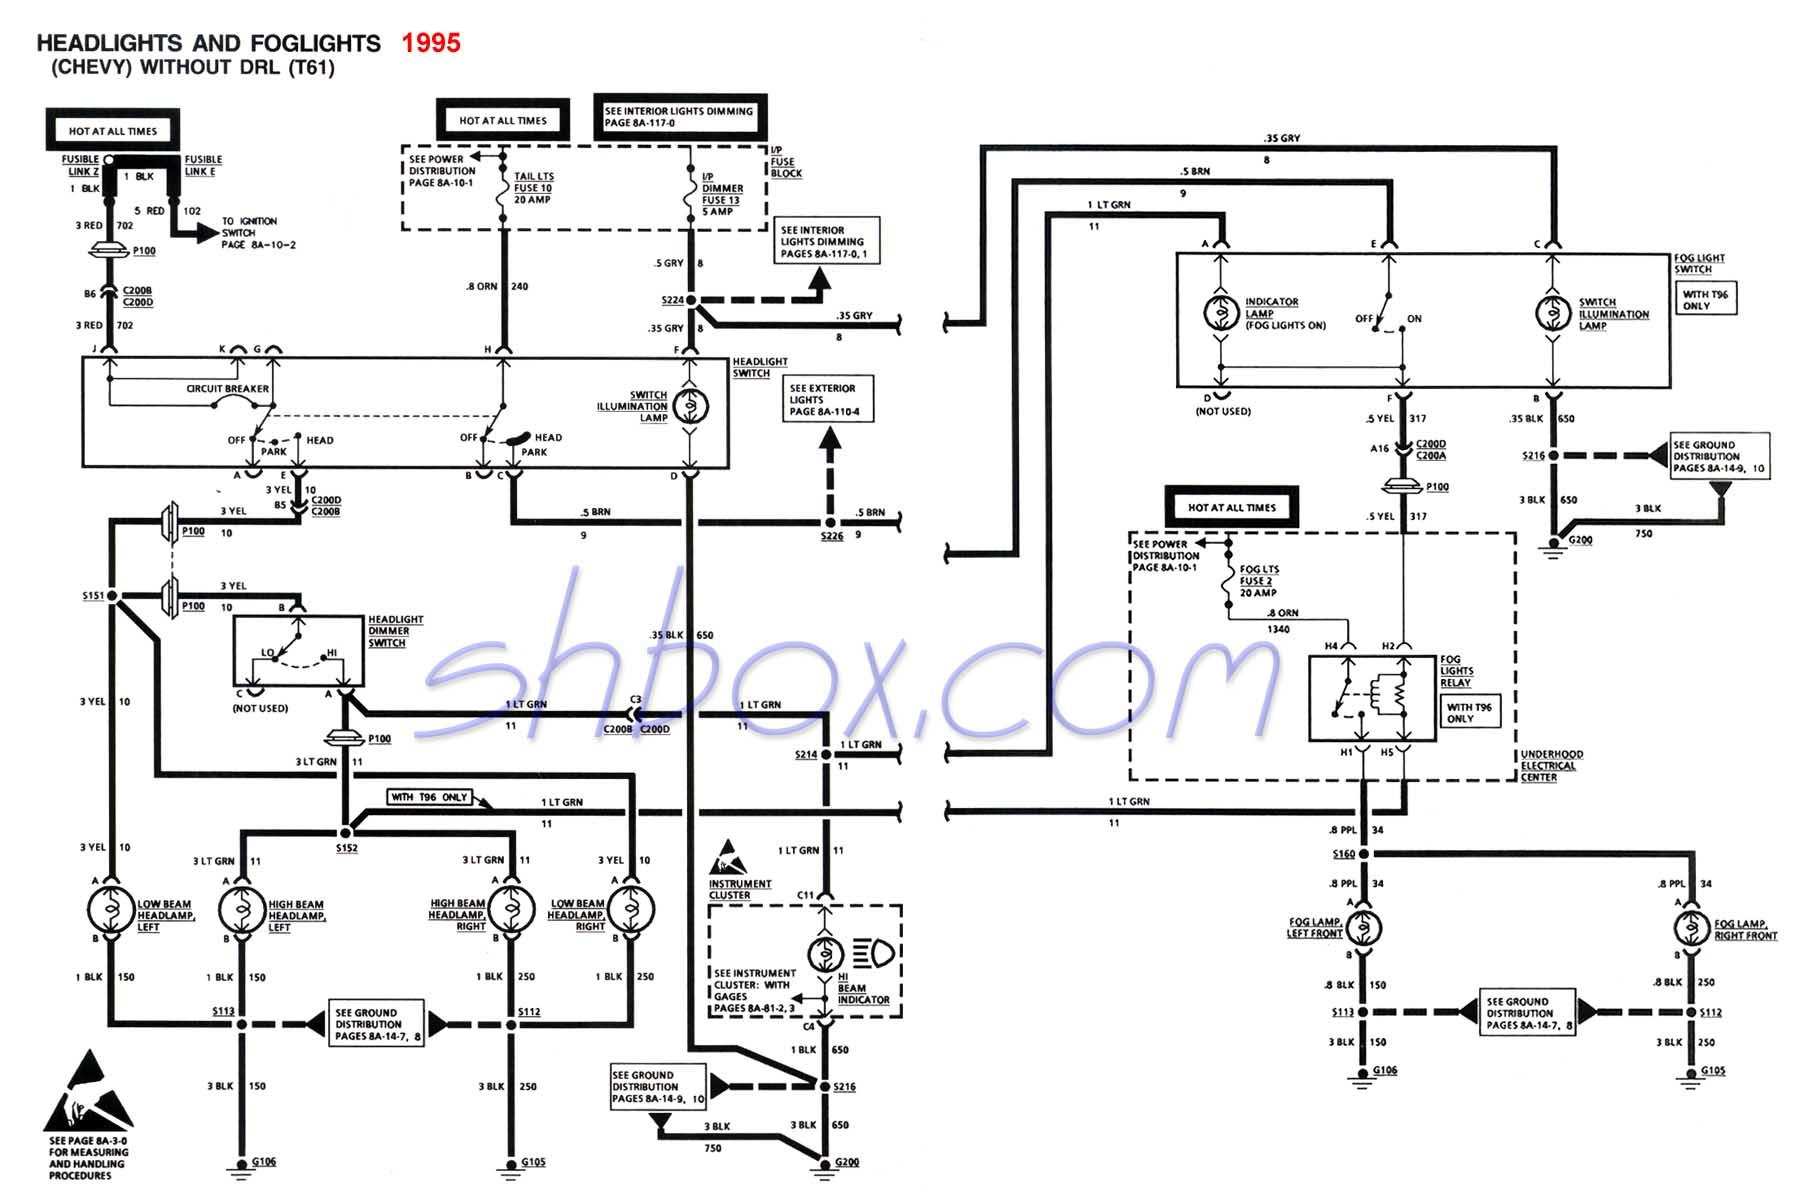 79 trans am ac wiring diagram 2004 dodge caravan ignition coil vacuum lines and gauge install help to newbs page 6